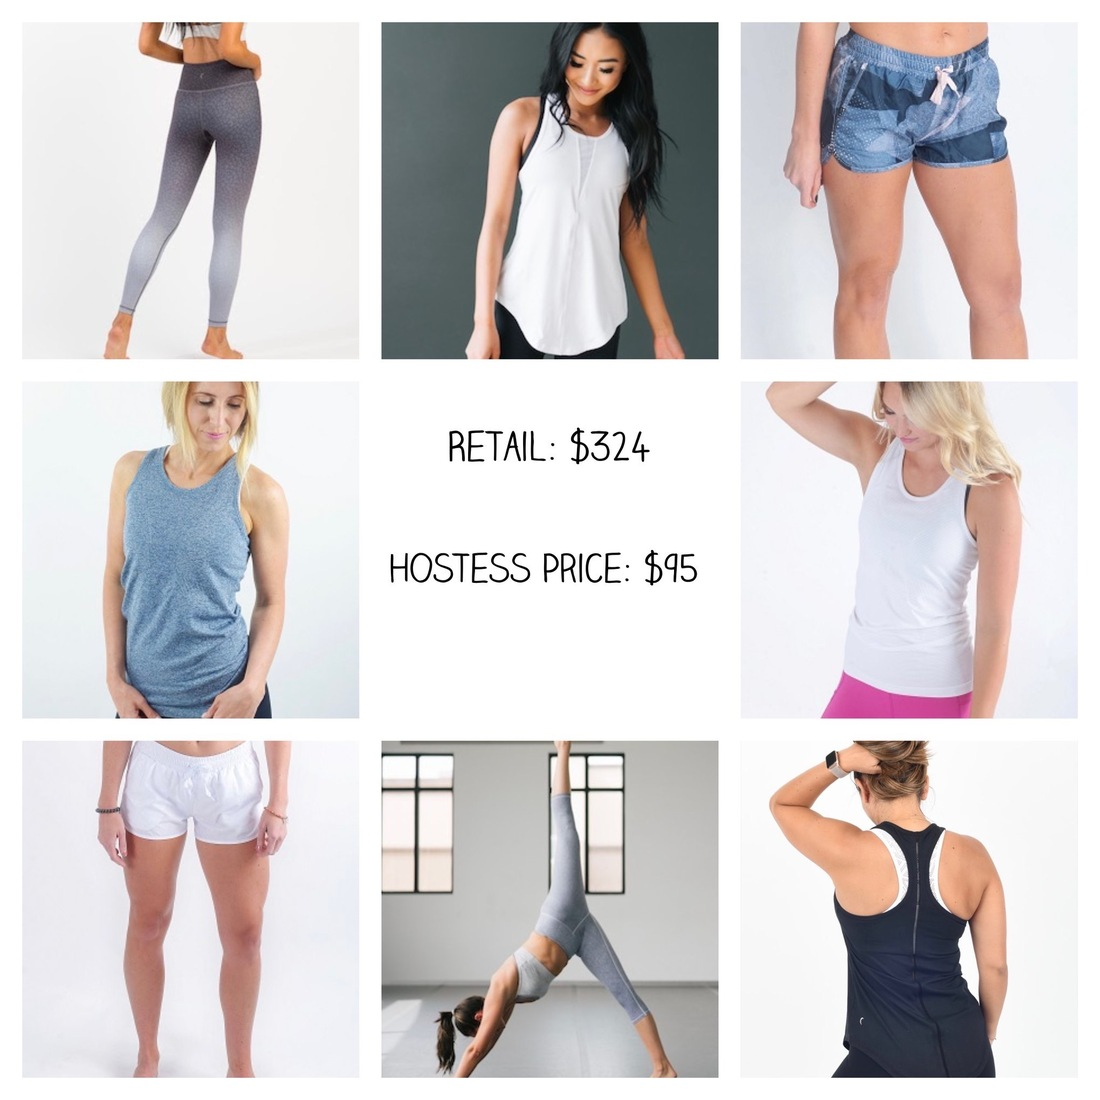 ZYIA Active collage of activewear